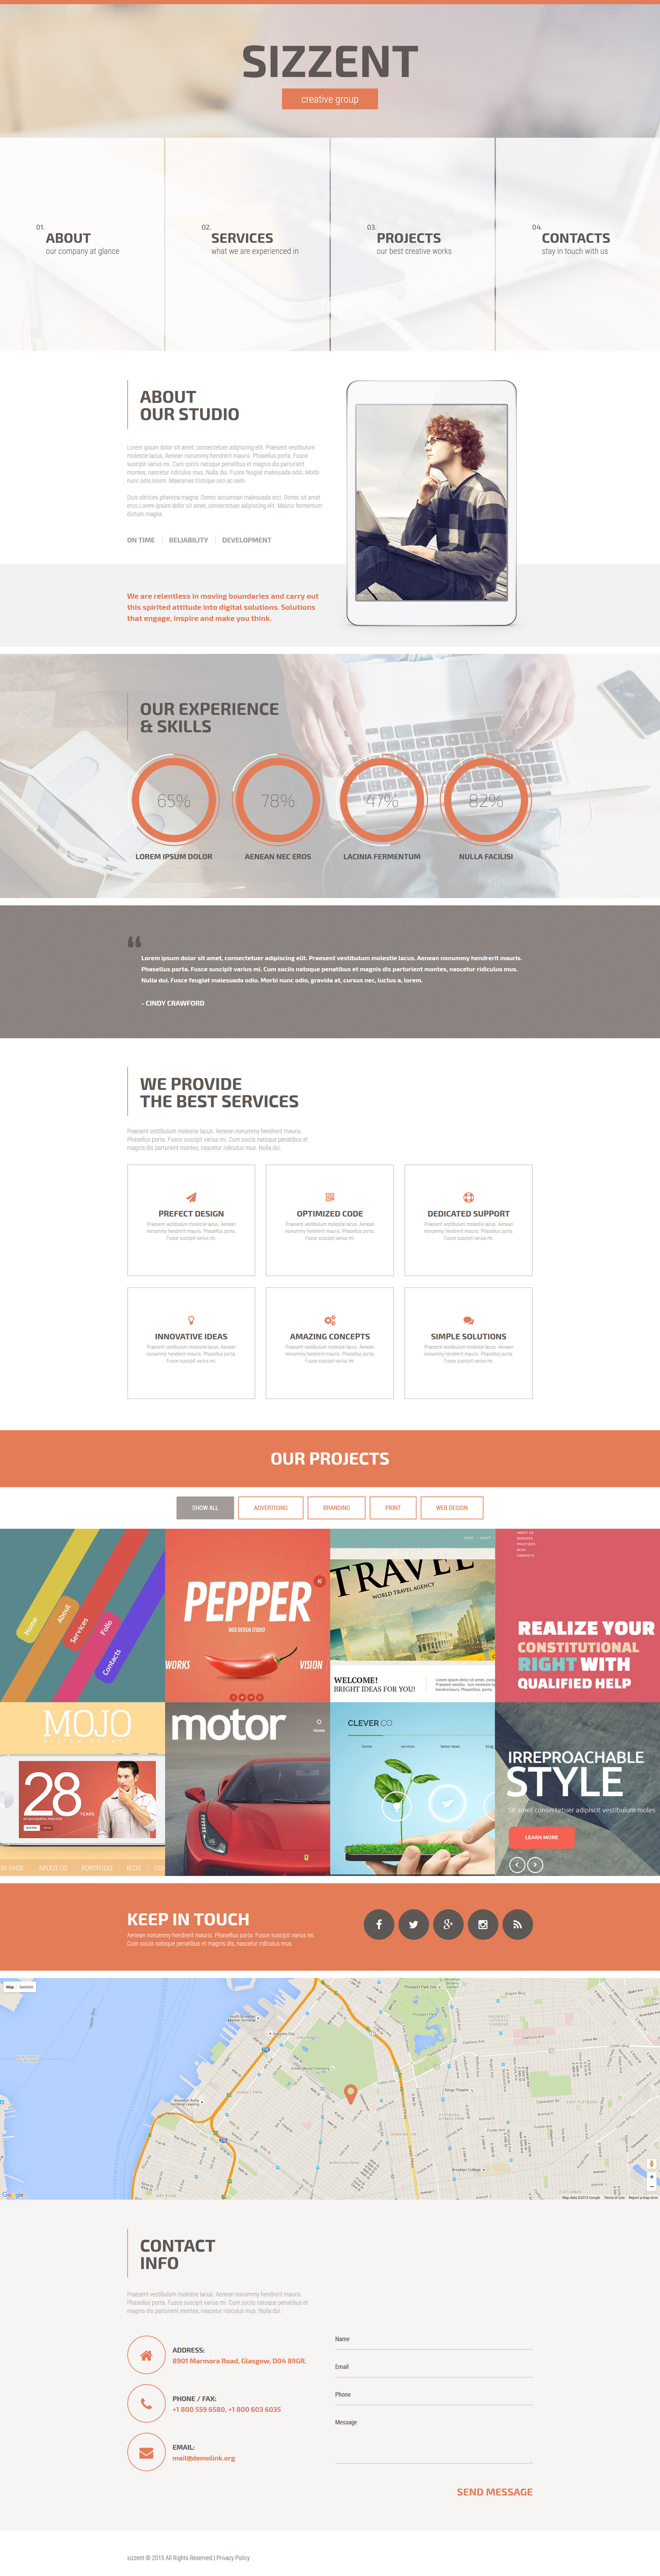 Sizzent Website Template